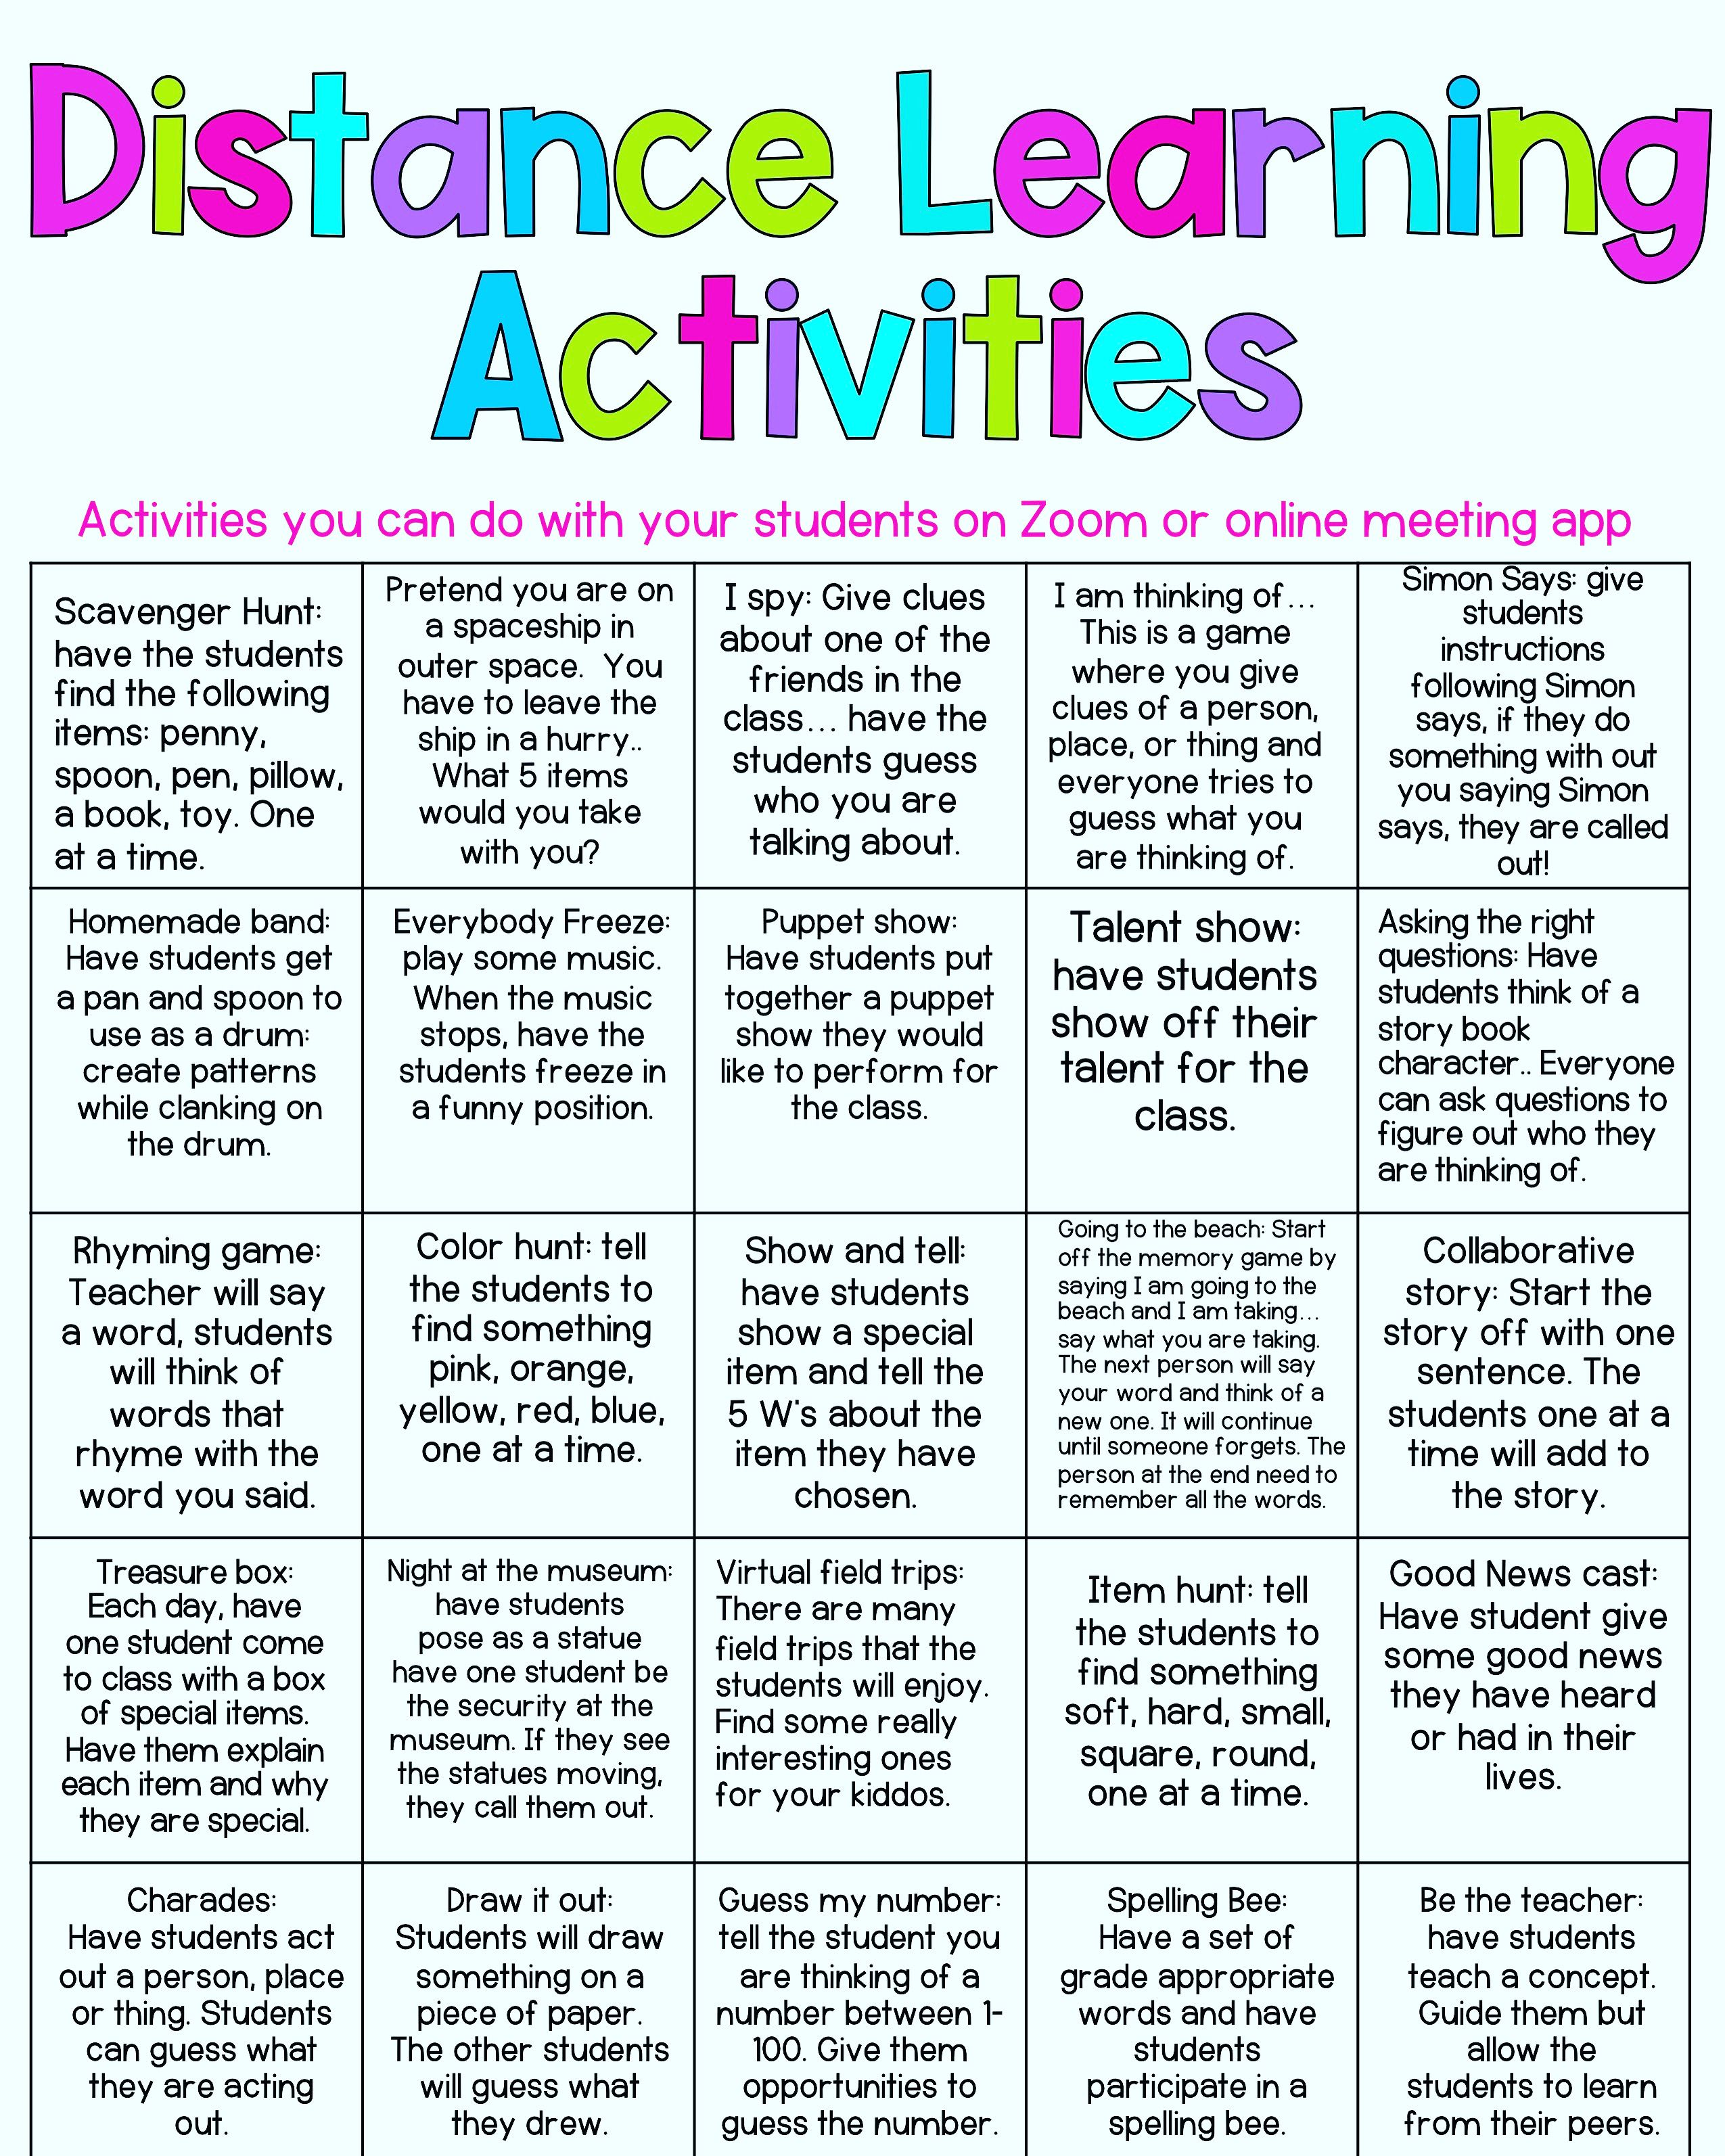 Distance Learning Activity Mat